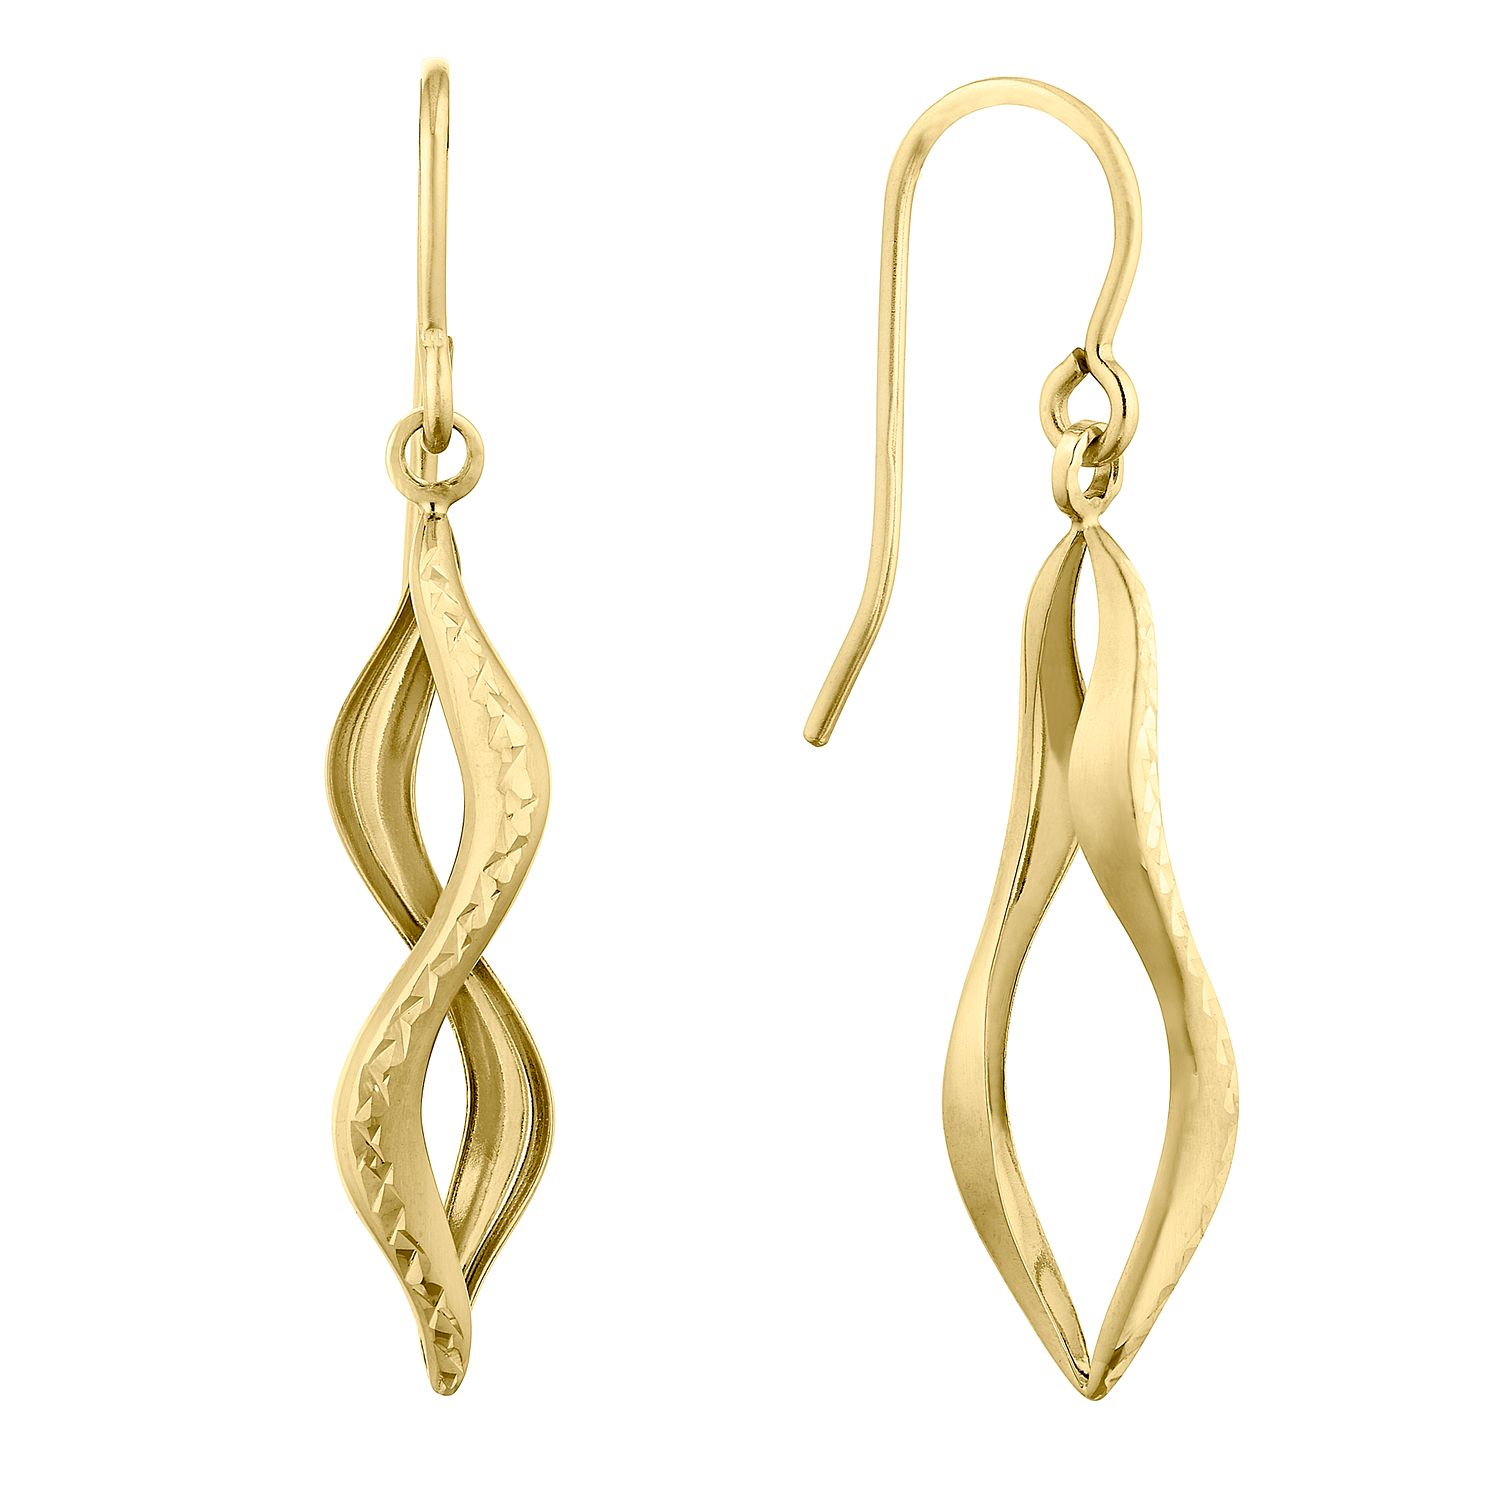 9ct Yellow Gold Figure of Eight Drop Earrings - Product number 9665471